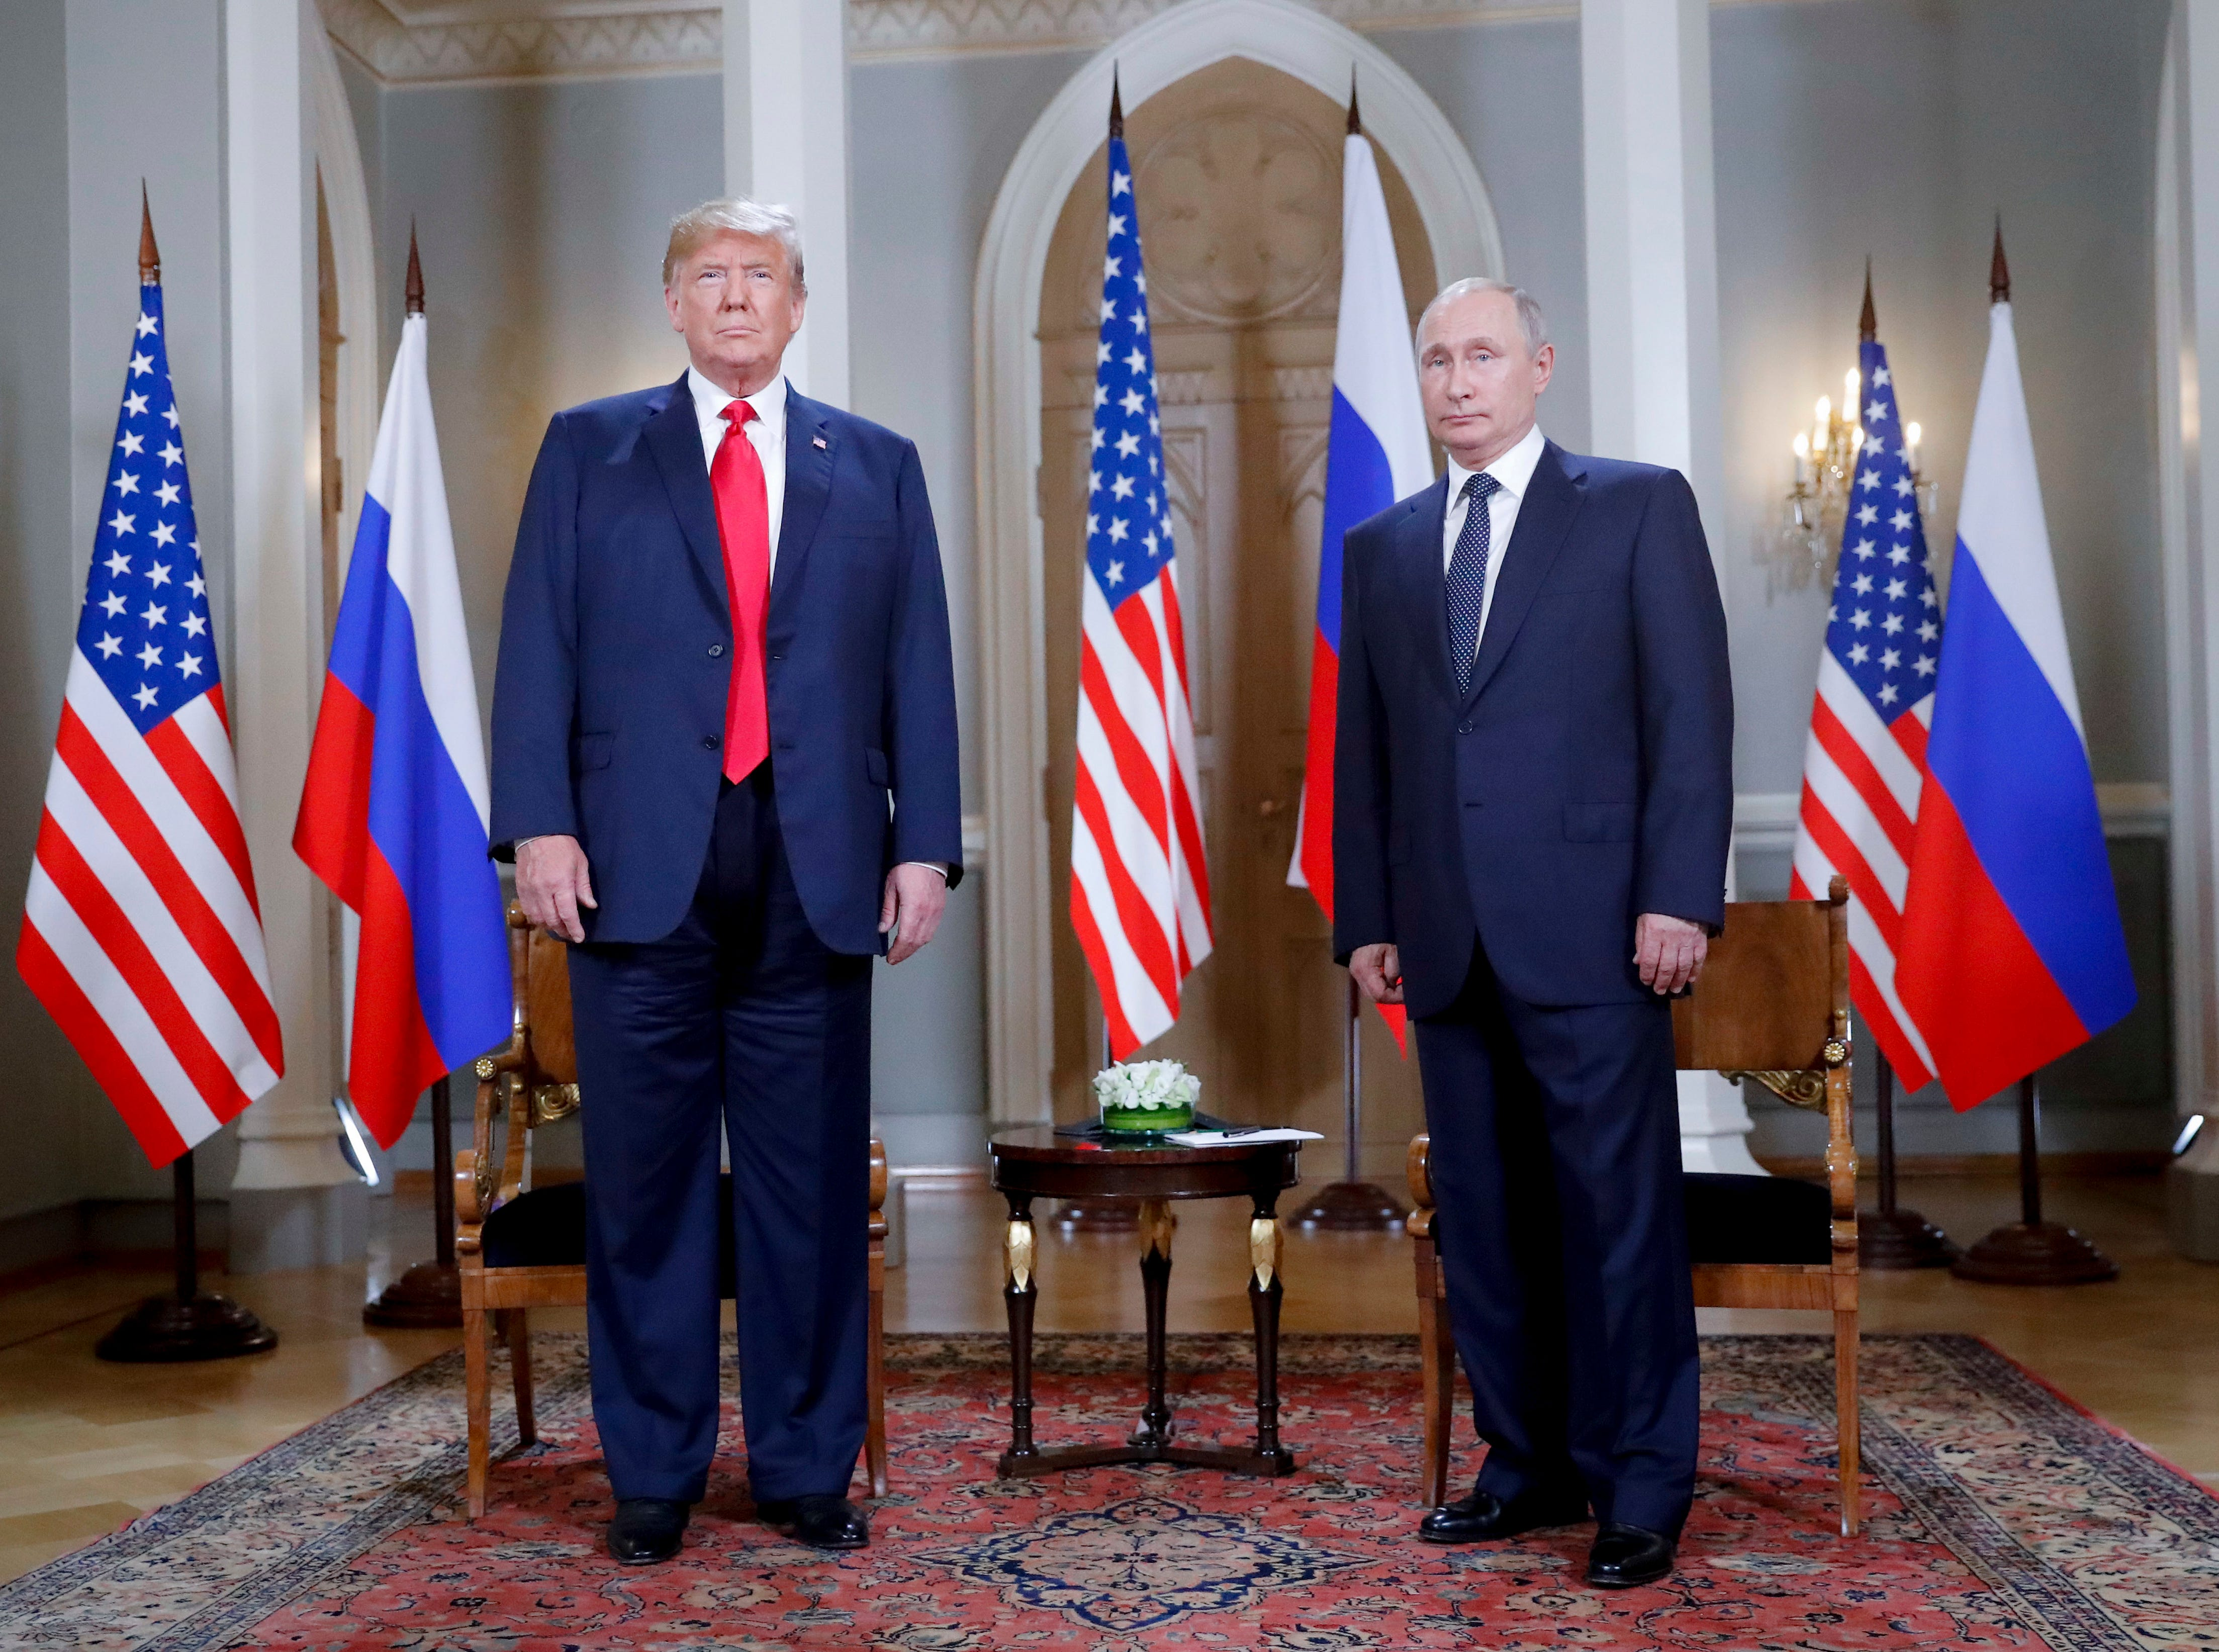 US President Donald Trump and Russian President Vladimir Putin, right, pose for a photograph at the beginning of a one-on-one meeting at the Presidential Palace in Helsinki, Finland, Monday, July 16, 2018.